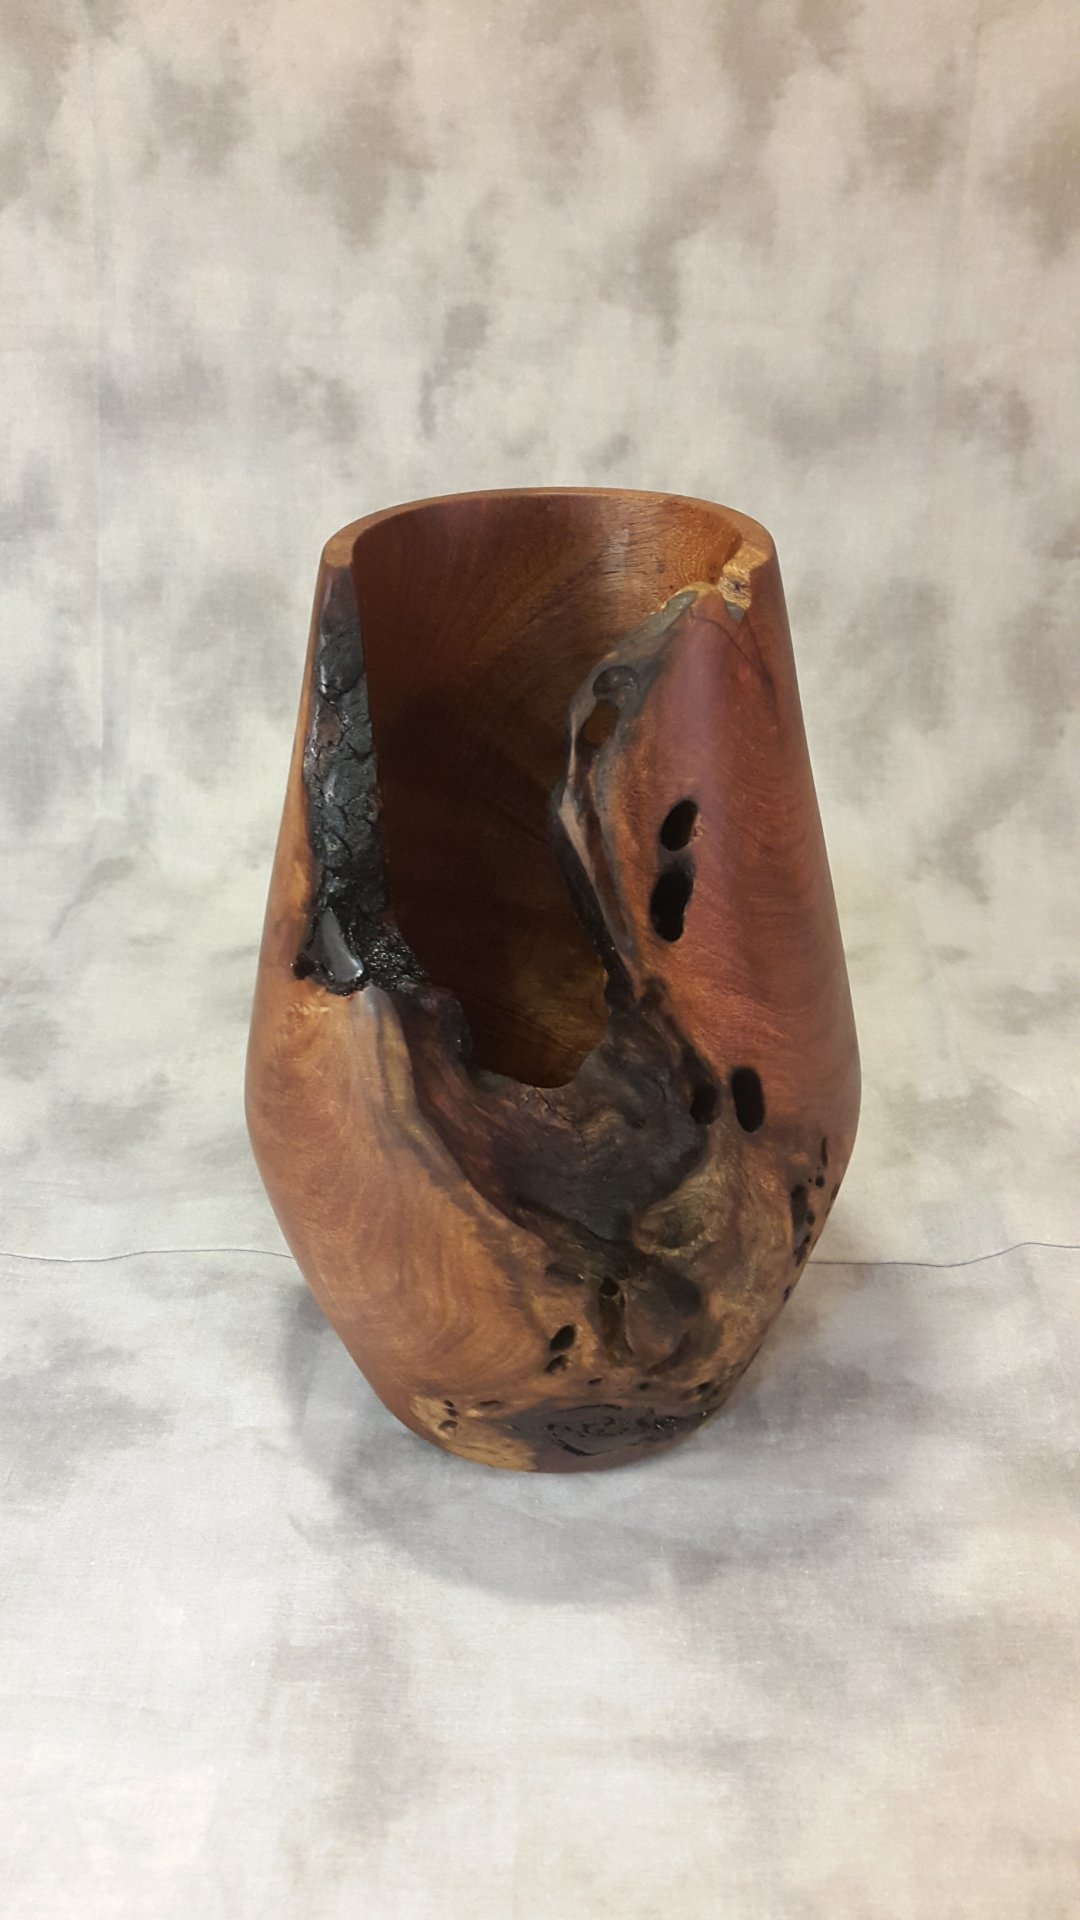 Mesquite Hollow Form